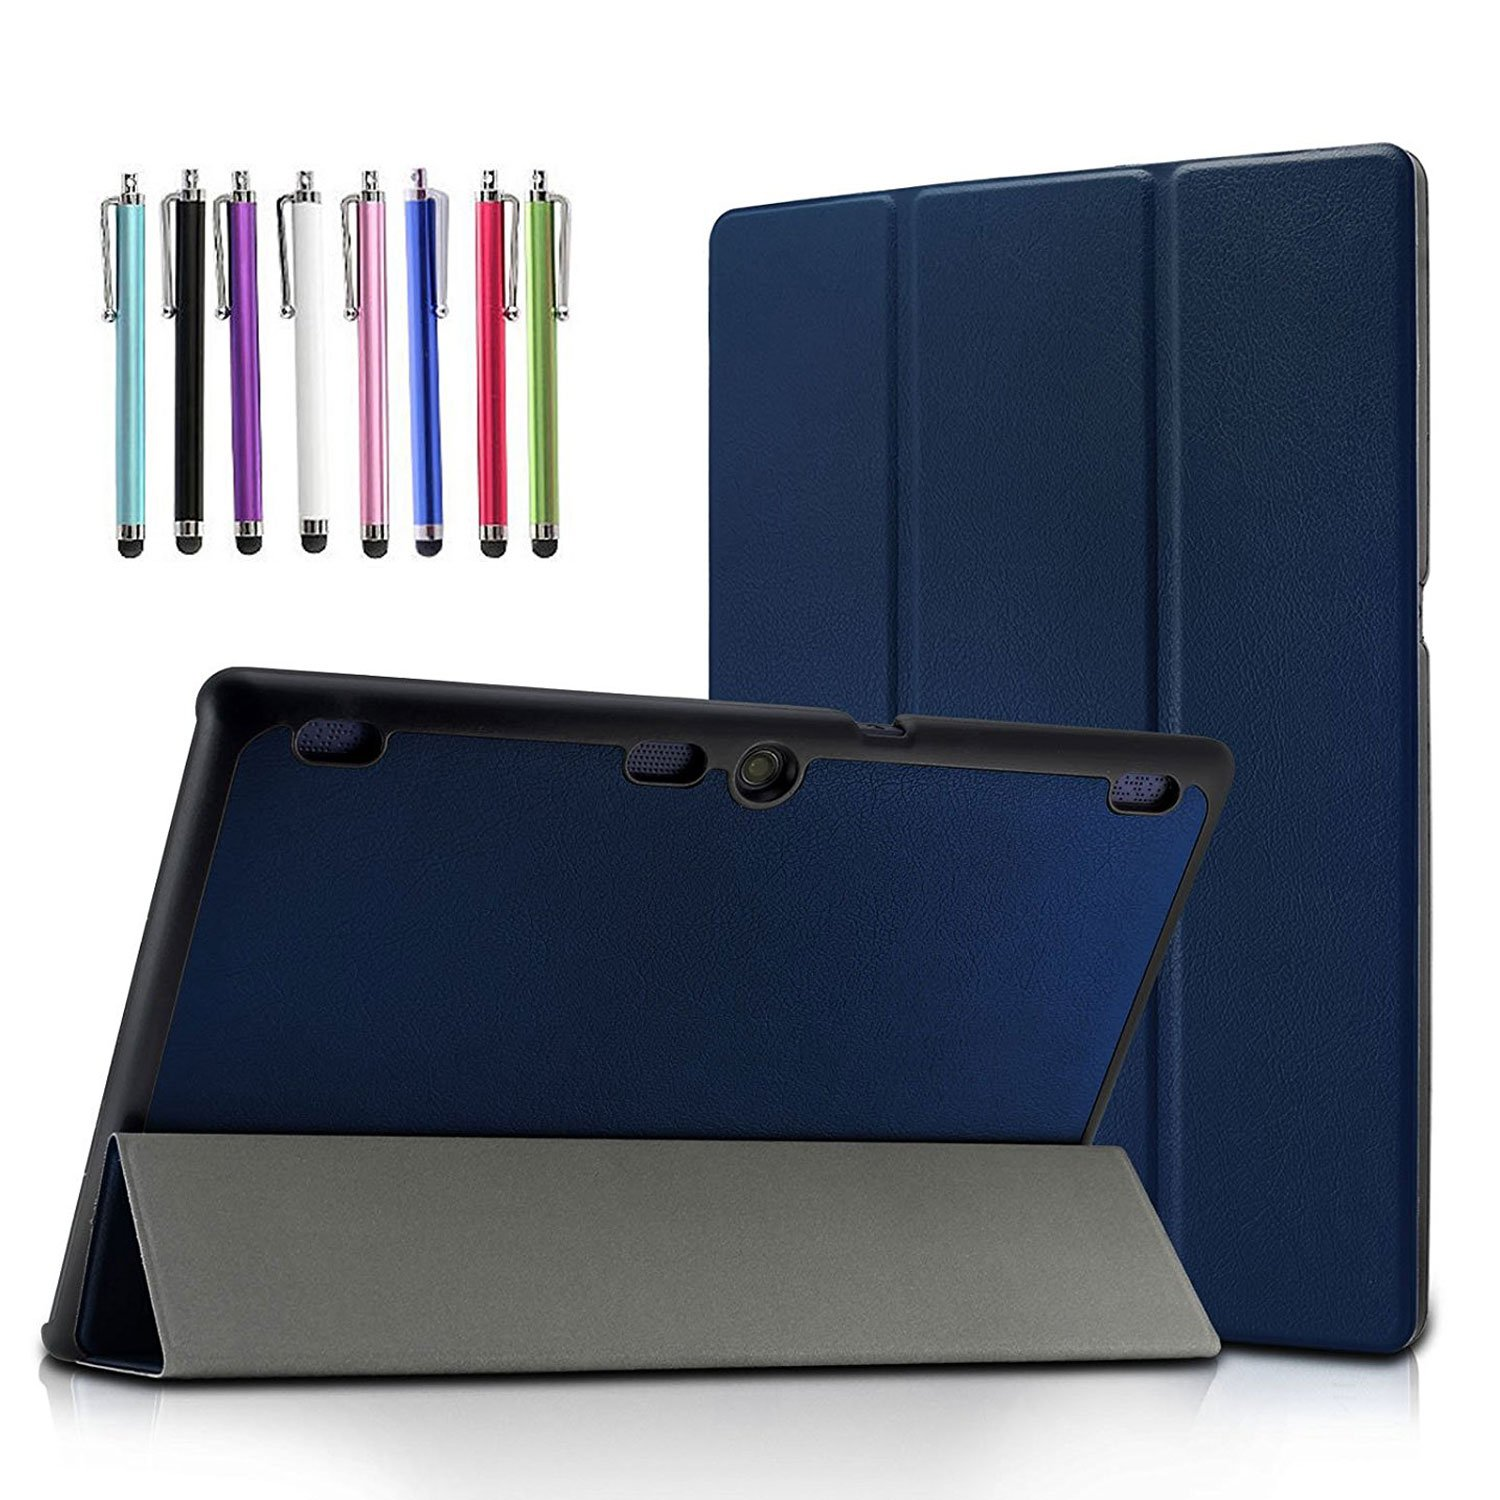 Lenovo TAB-X103F Tab 10/Tab 2 A10 Case, EpicGadget(TM) Slim Tri-Fold Case Cover with Auto Wake/Sleep for Lenovo TB3-X70F Tab 10/Tab2 A10-30/Tab2 A10-70/Tab 3 10 Business Tablet (Navy Blue)